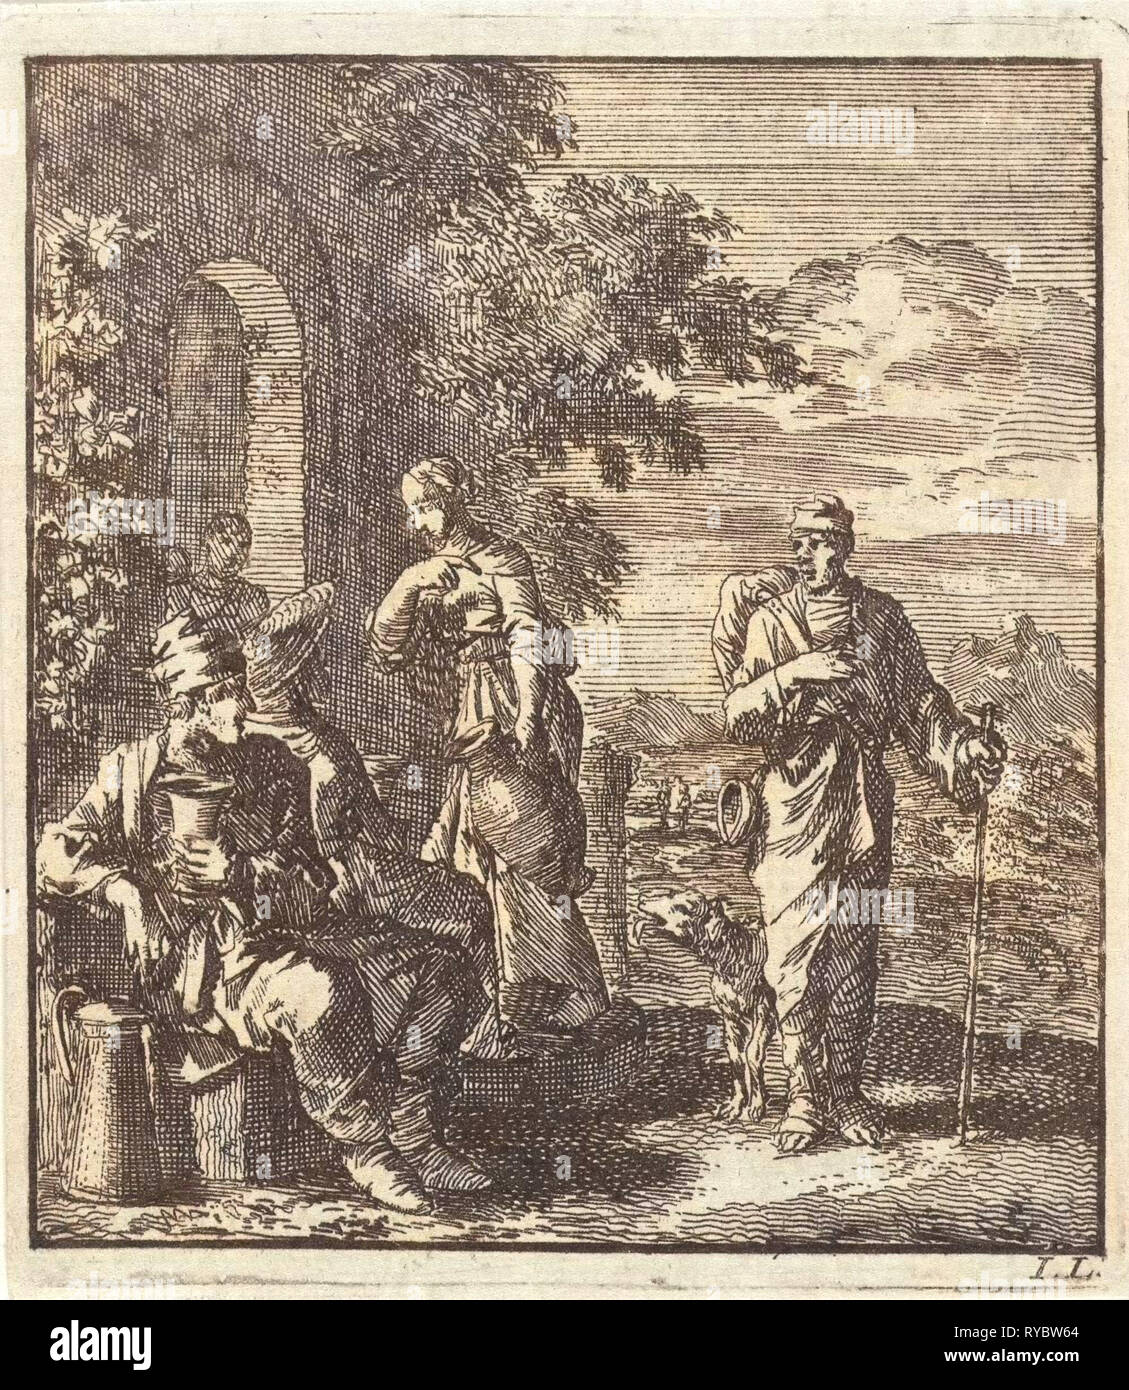 Seated man with cup and can turns from a thirsty hiker, print maker: Jan Luyken, wed. Pieter Arentsz & Cornelis van der Sys II, 1711 - Stock Image